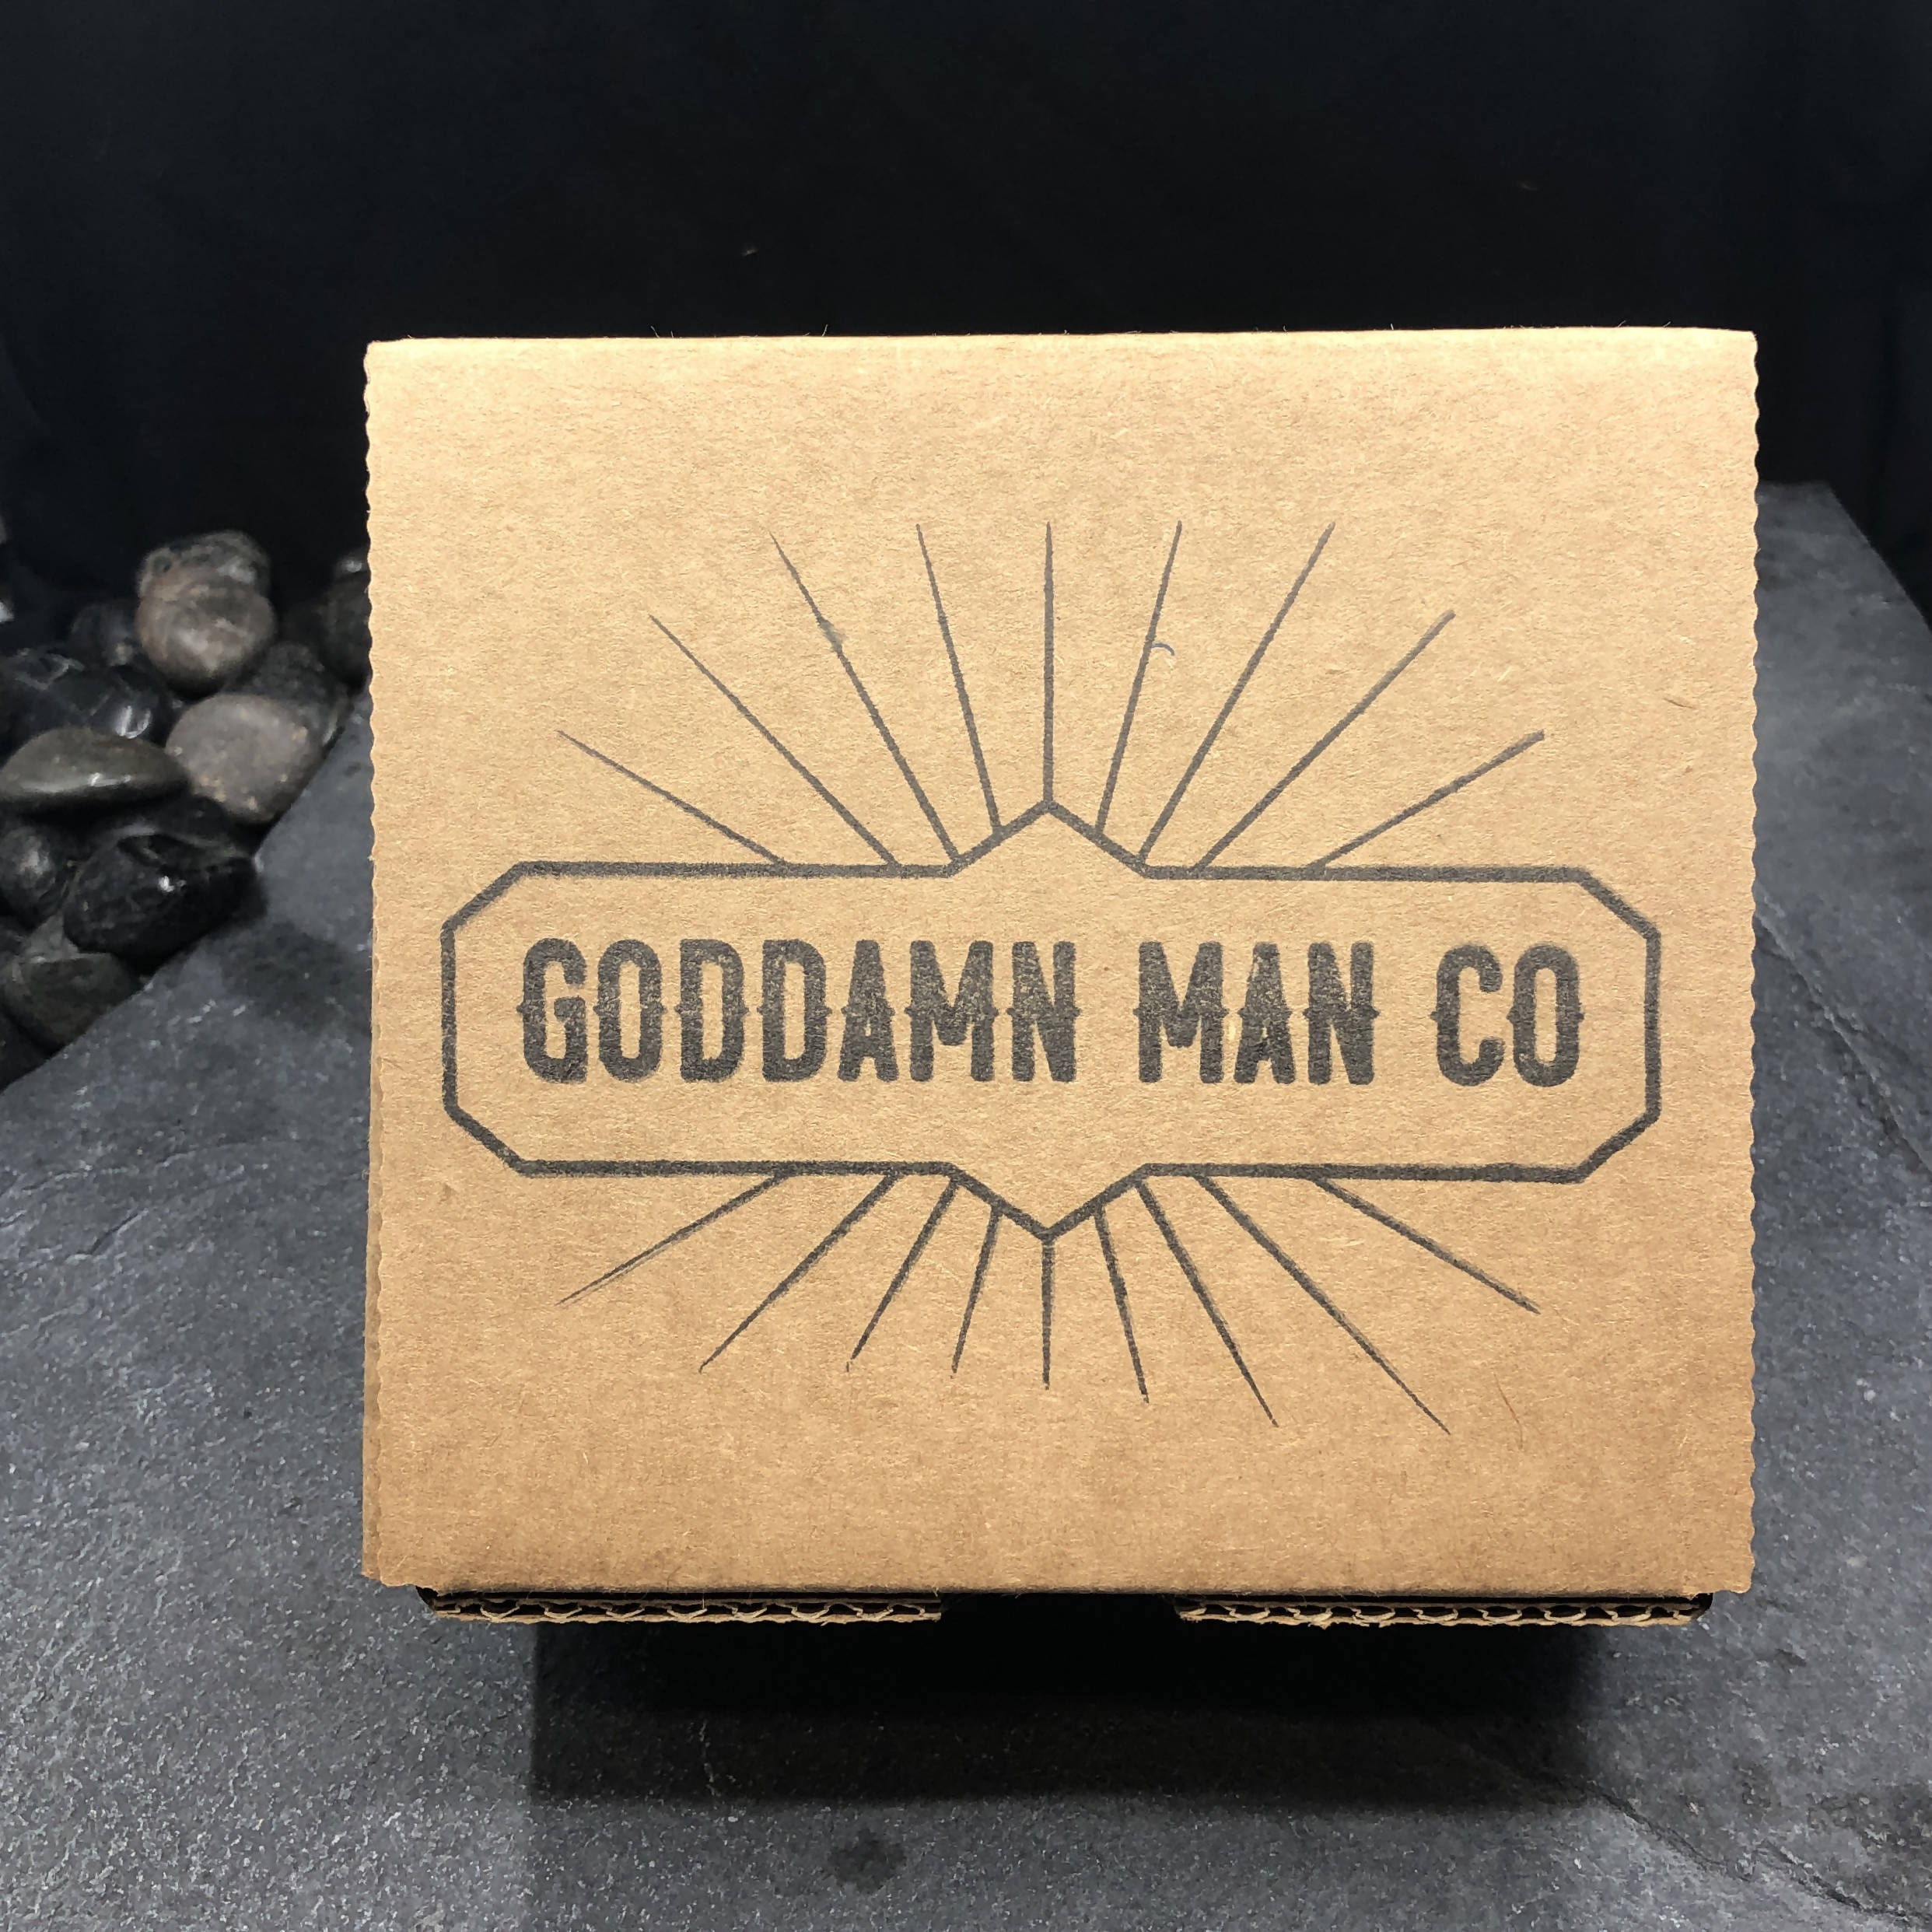 Goddamn Man Starter Beard Grooming Kit